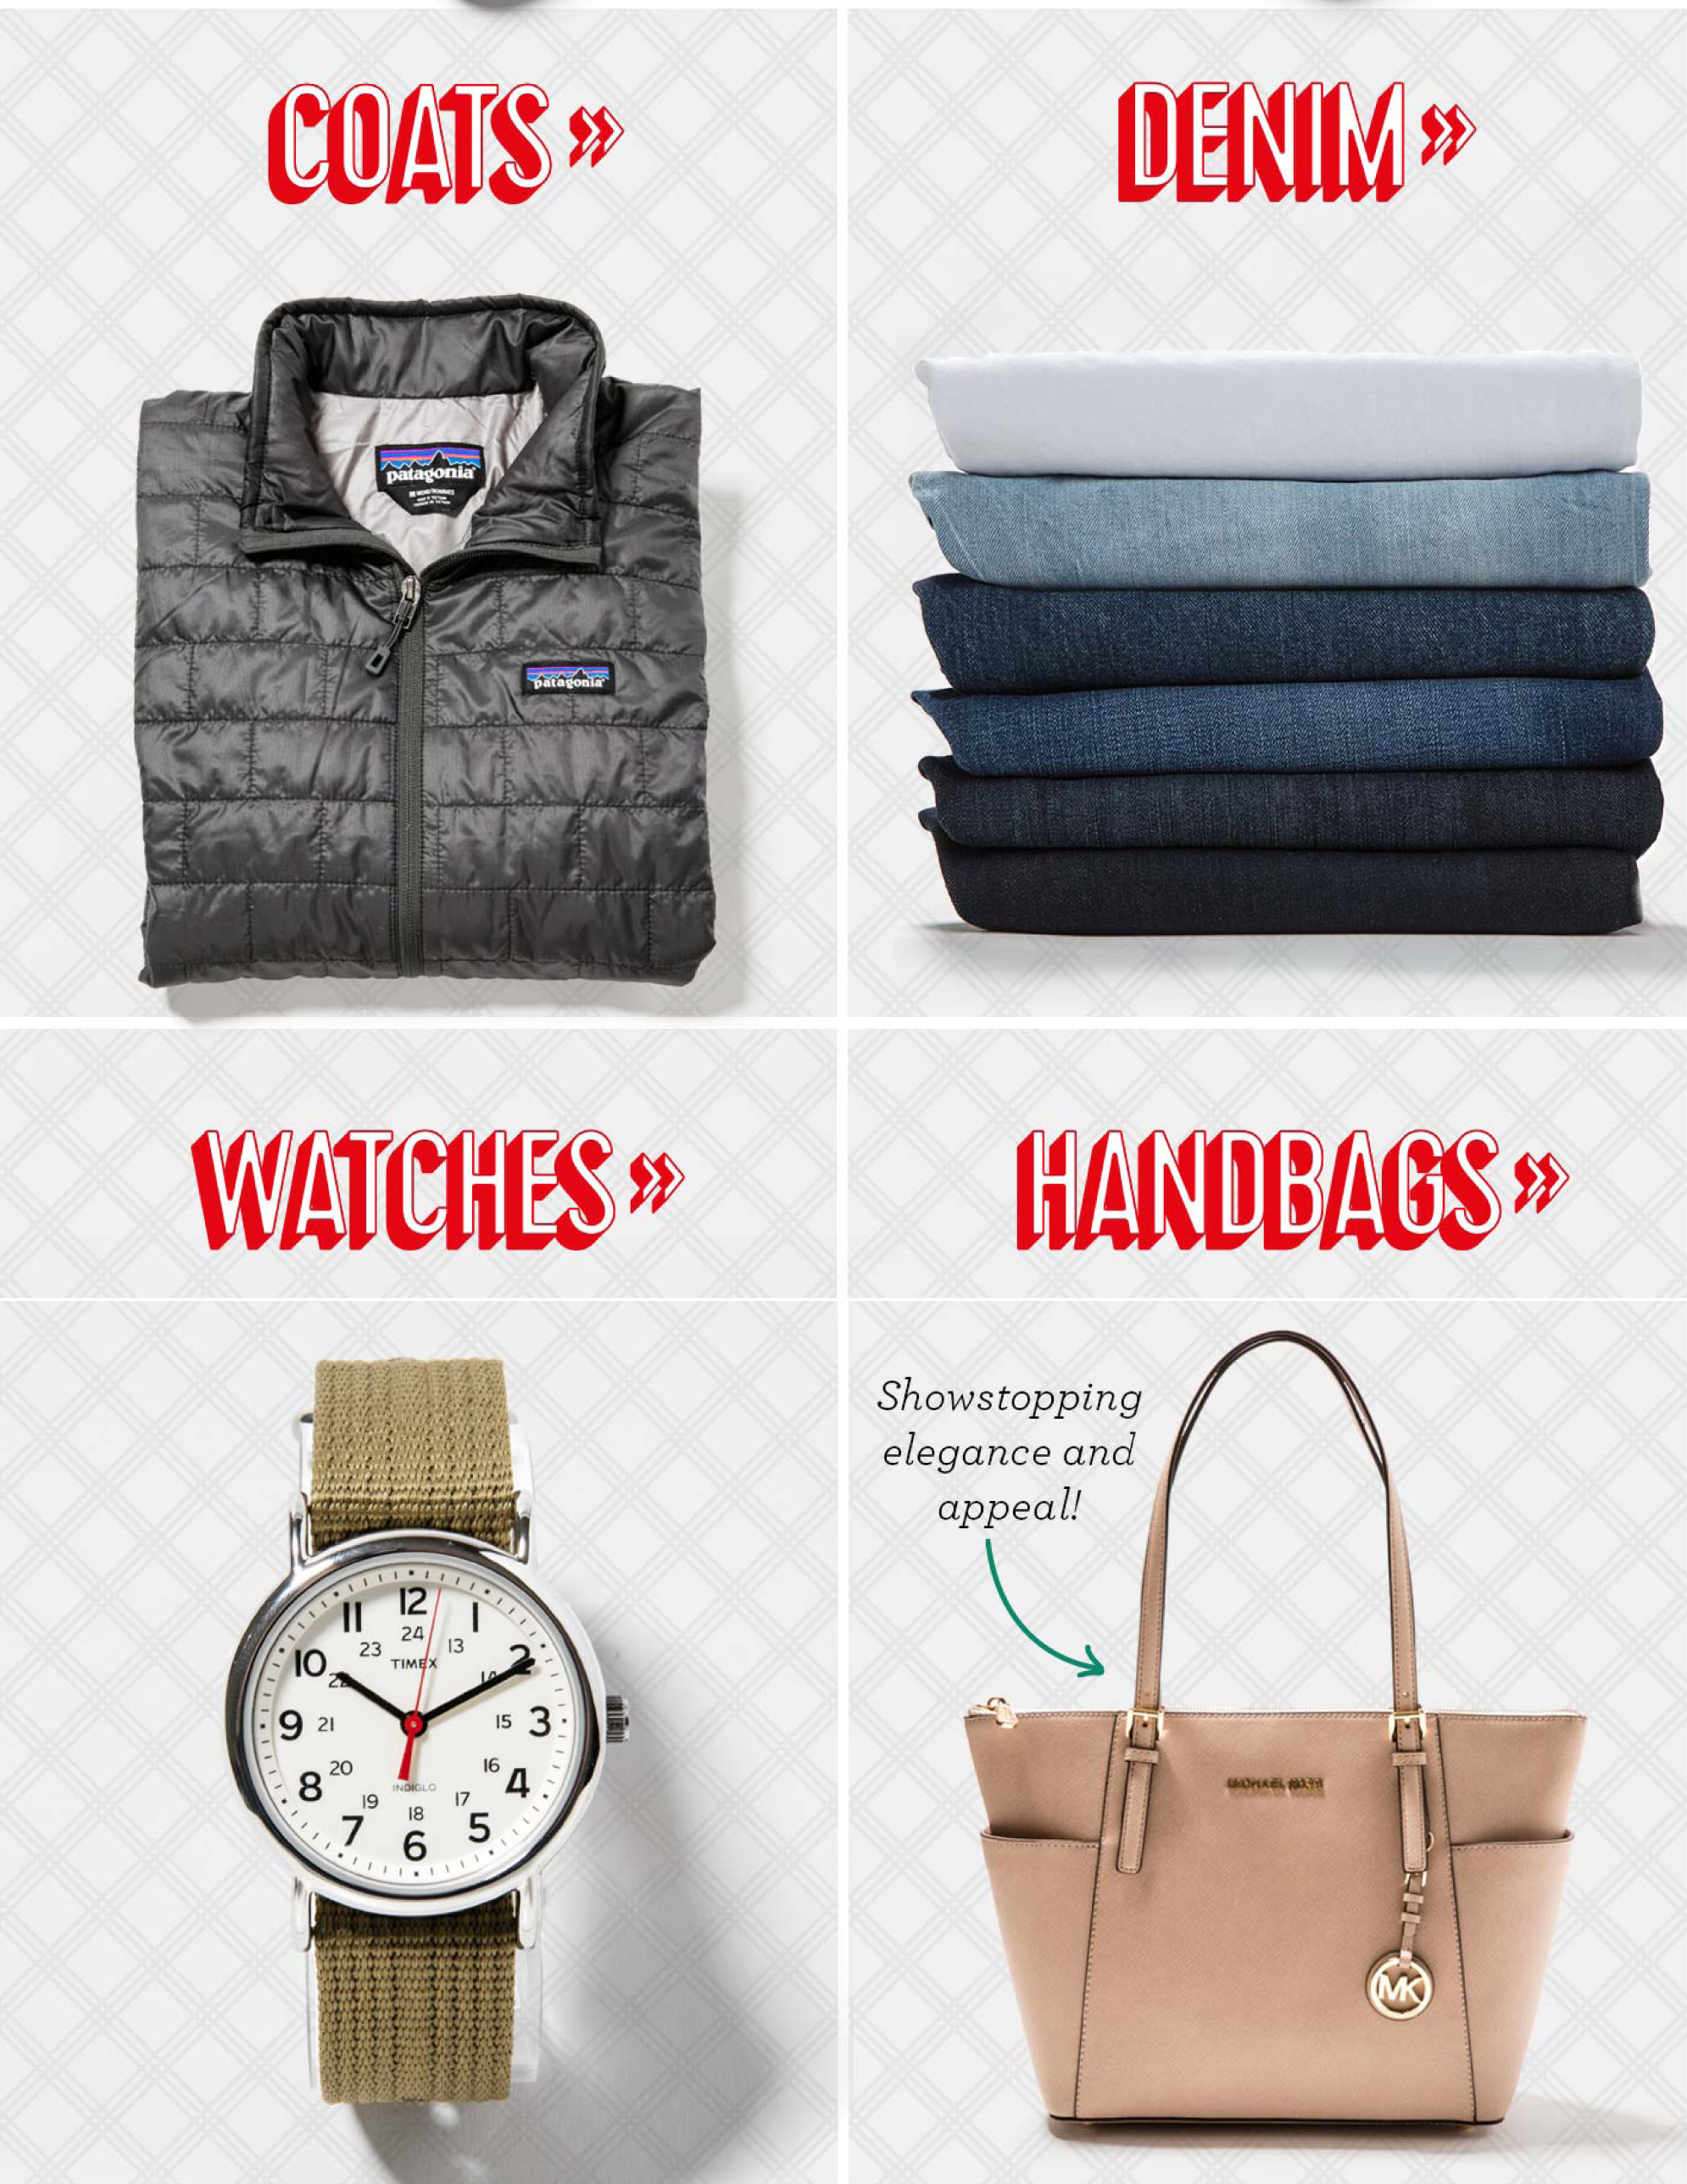 zappos-gift-guide-2